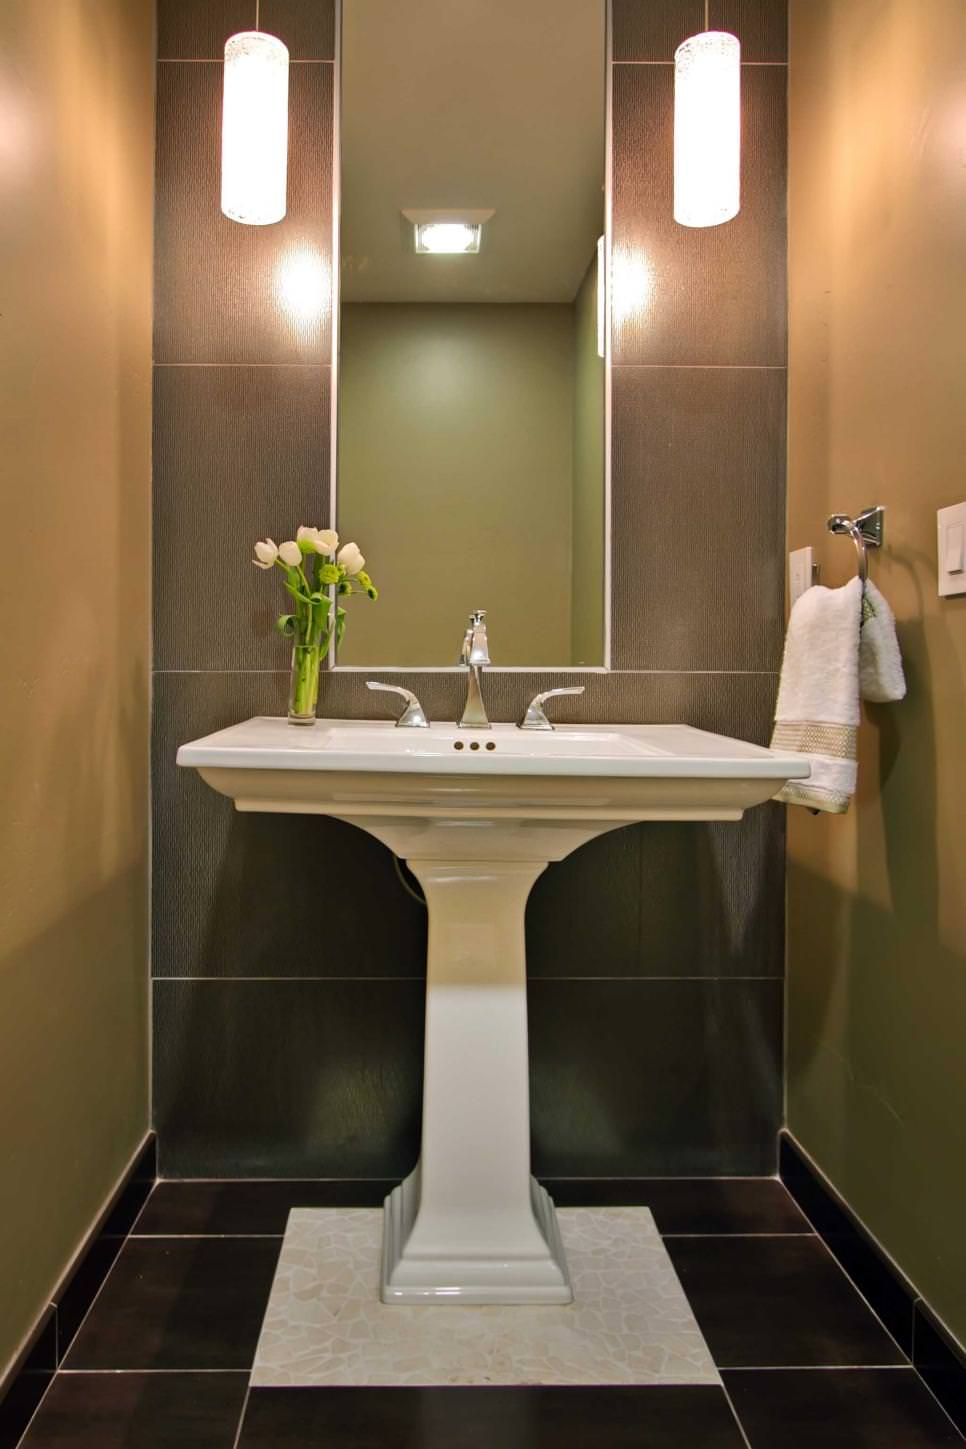 bathroom pedestal sinks. Transitional Bathroom Pedestal Sink Ideas Sinks